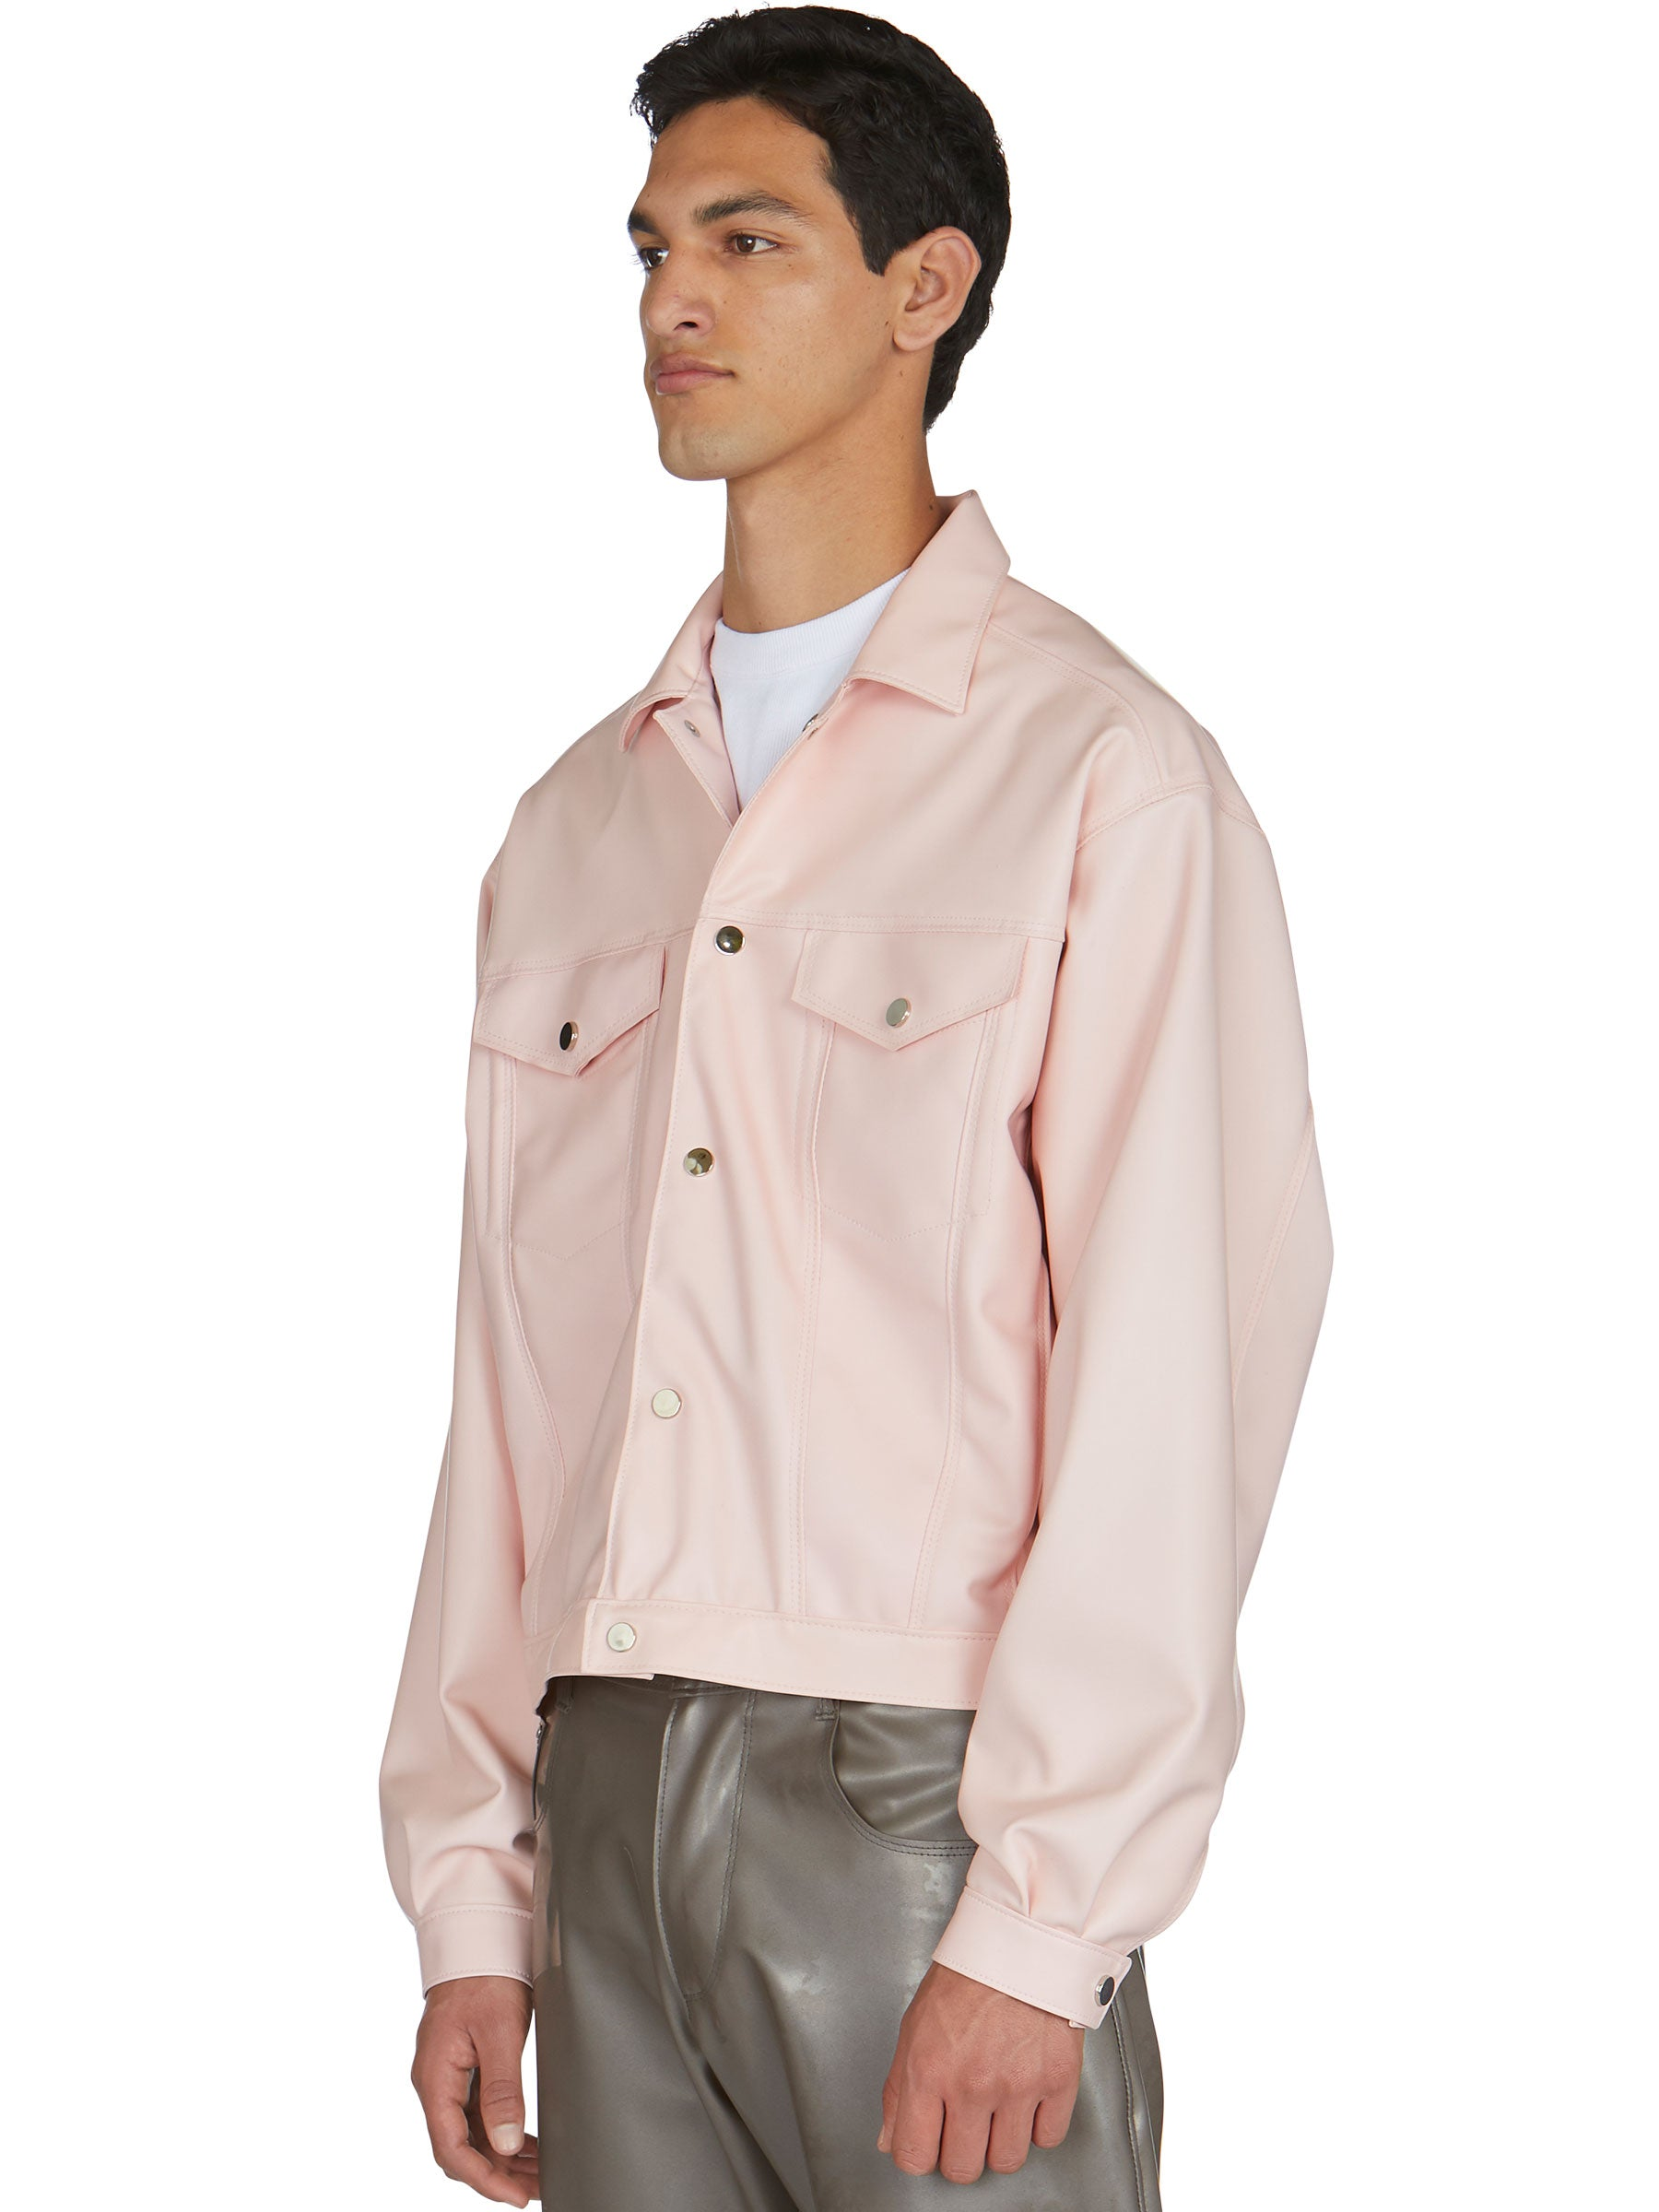 odd92 Shop Arthur Avellano Spring/Summer 2019 Menswear Pink Latex Jean Jacket - 5